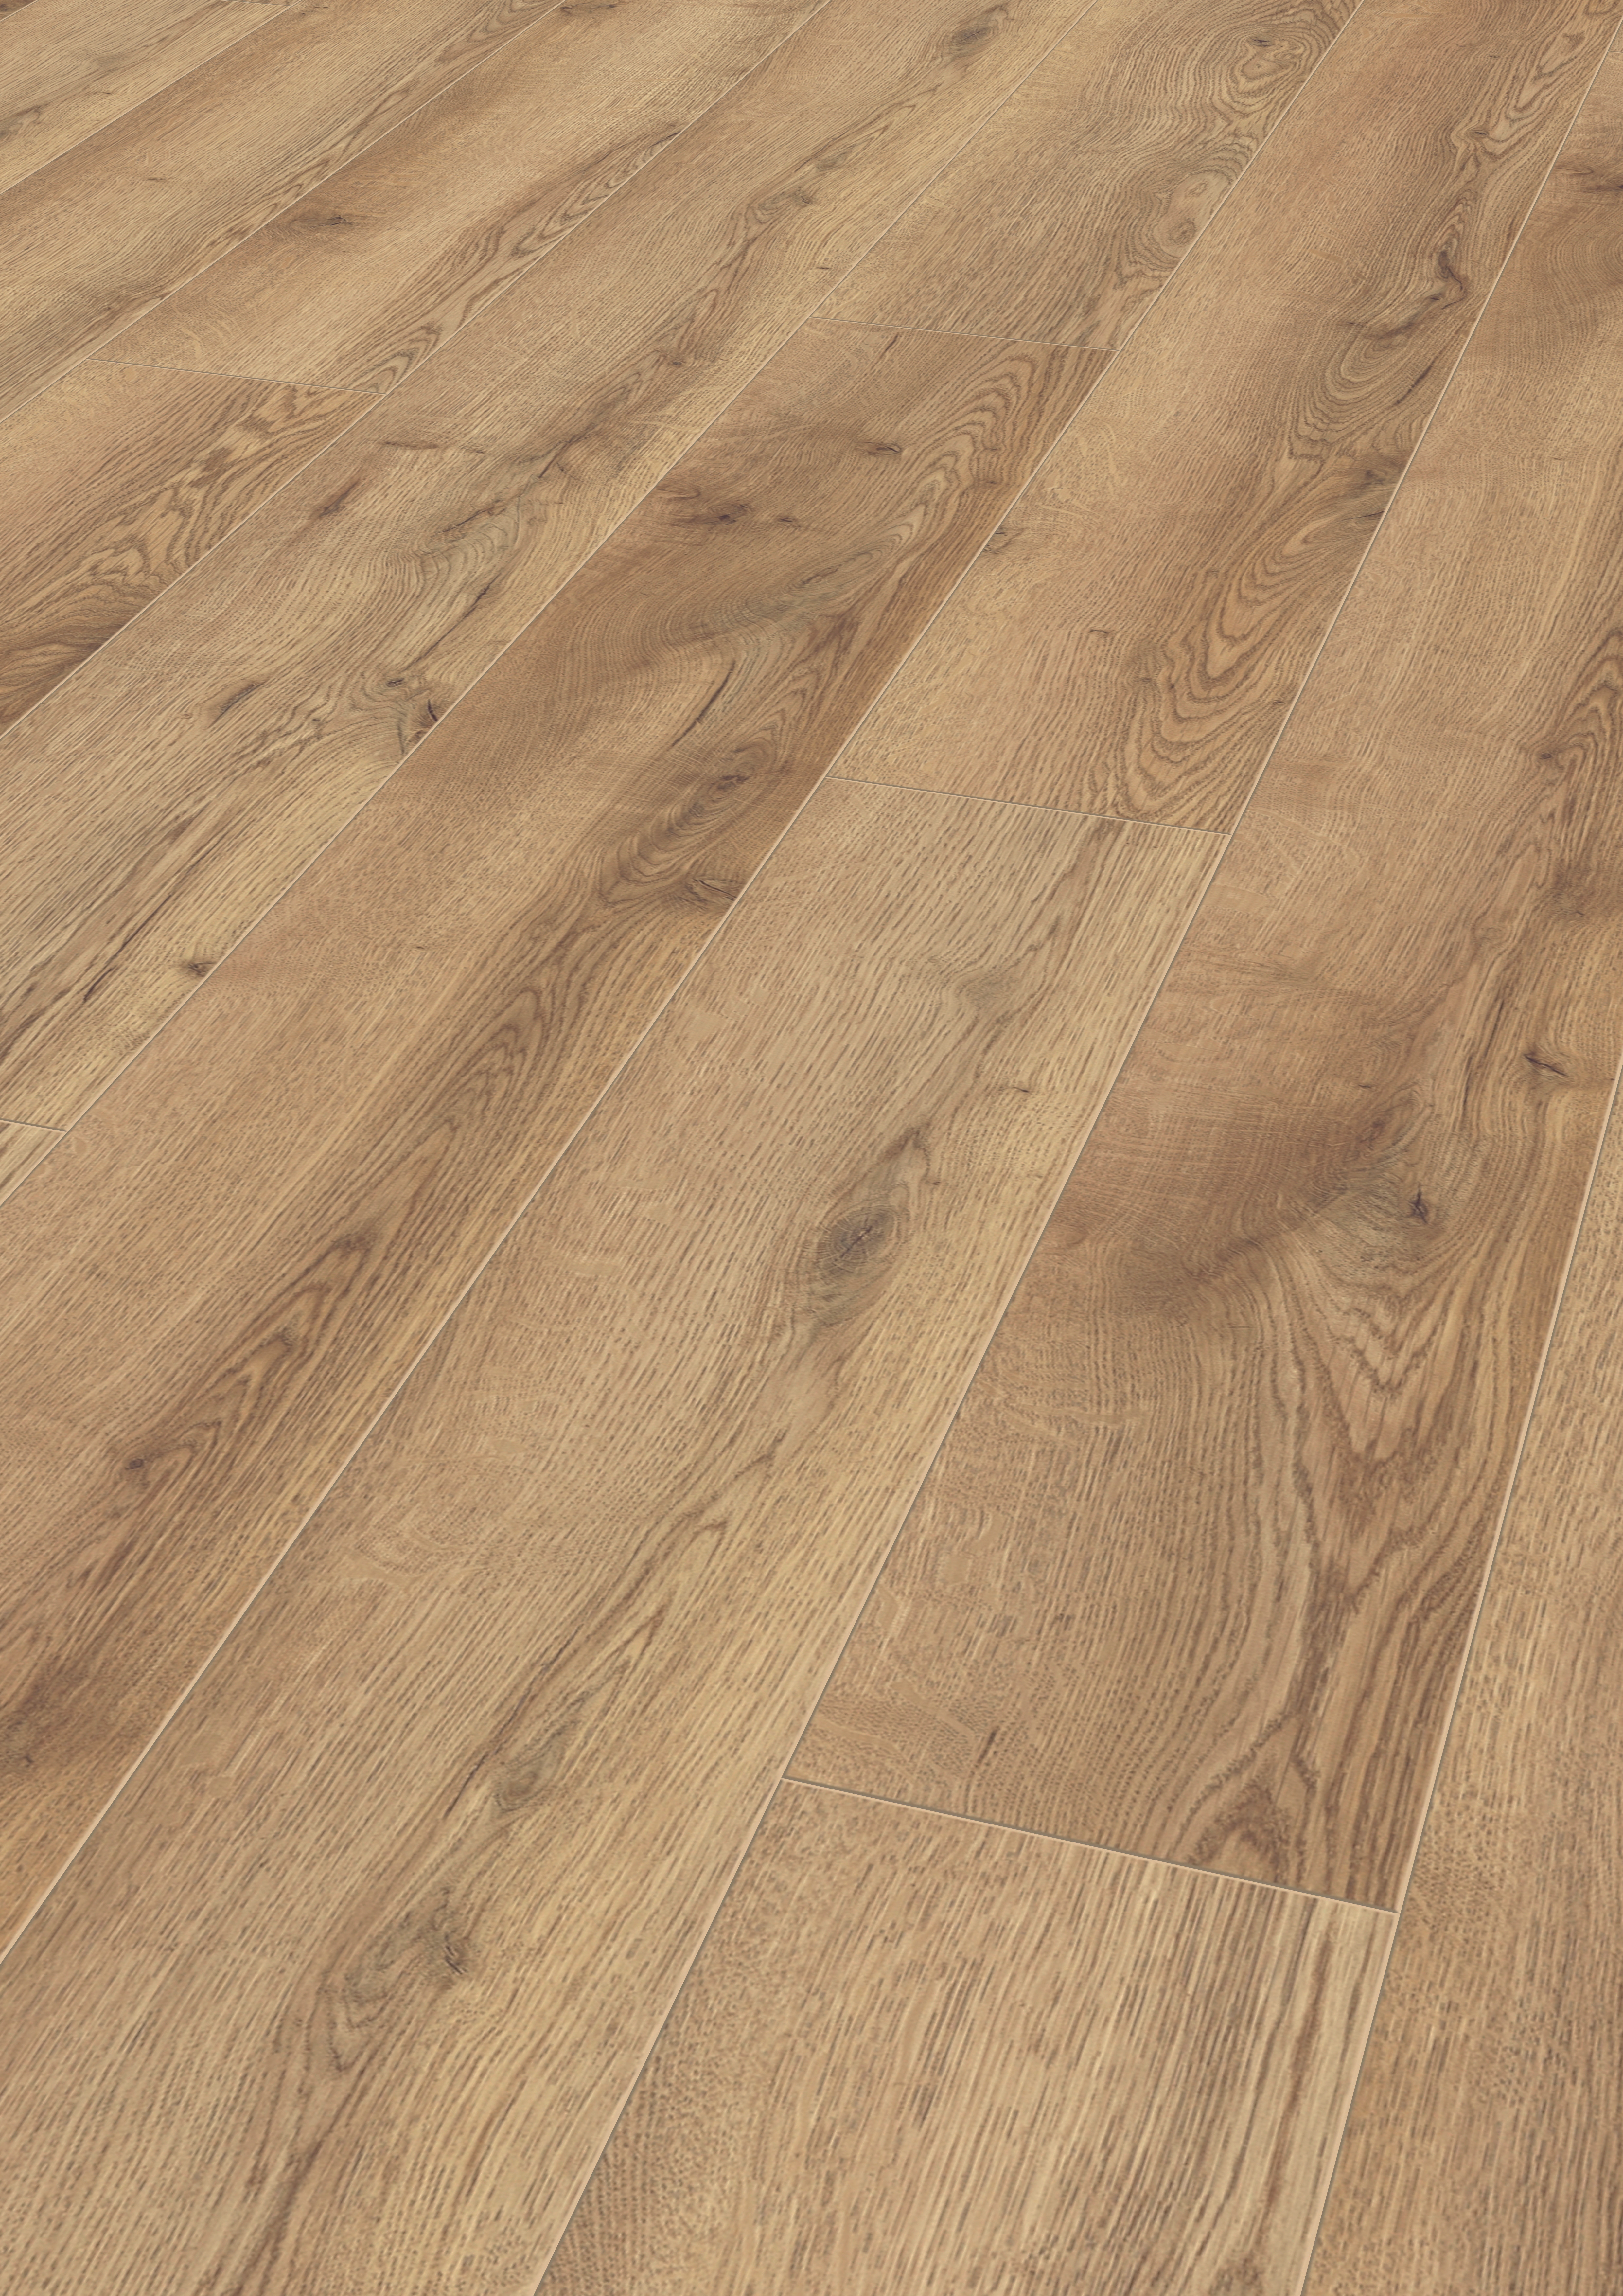 hardwood flooring sale in mississauga of mammut laminate flooring in country house plank style kronotex regarding download picture amp